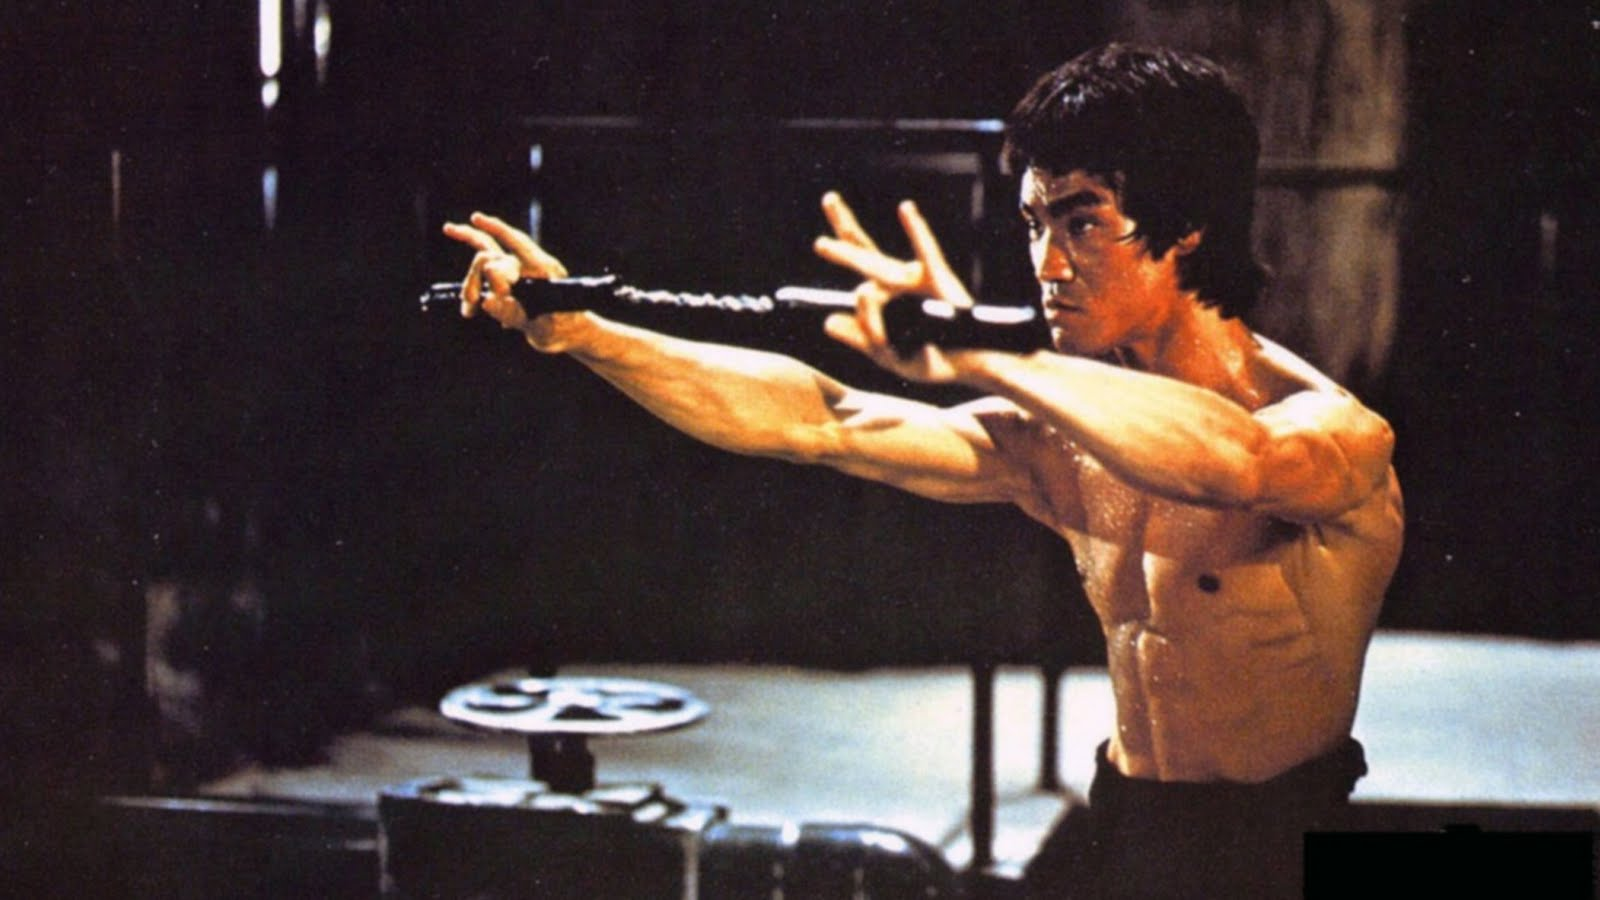 The Ace Black Blog: Movie Review: Enter The Dragon (1973)